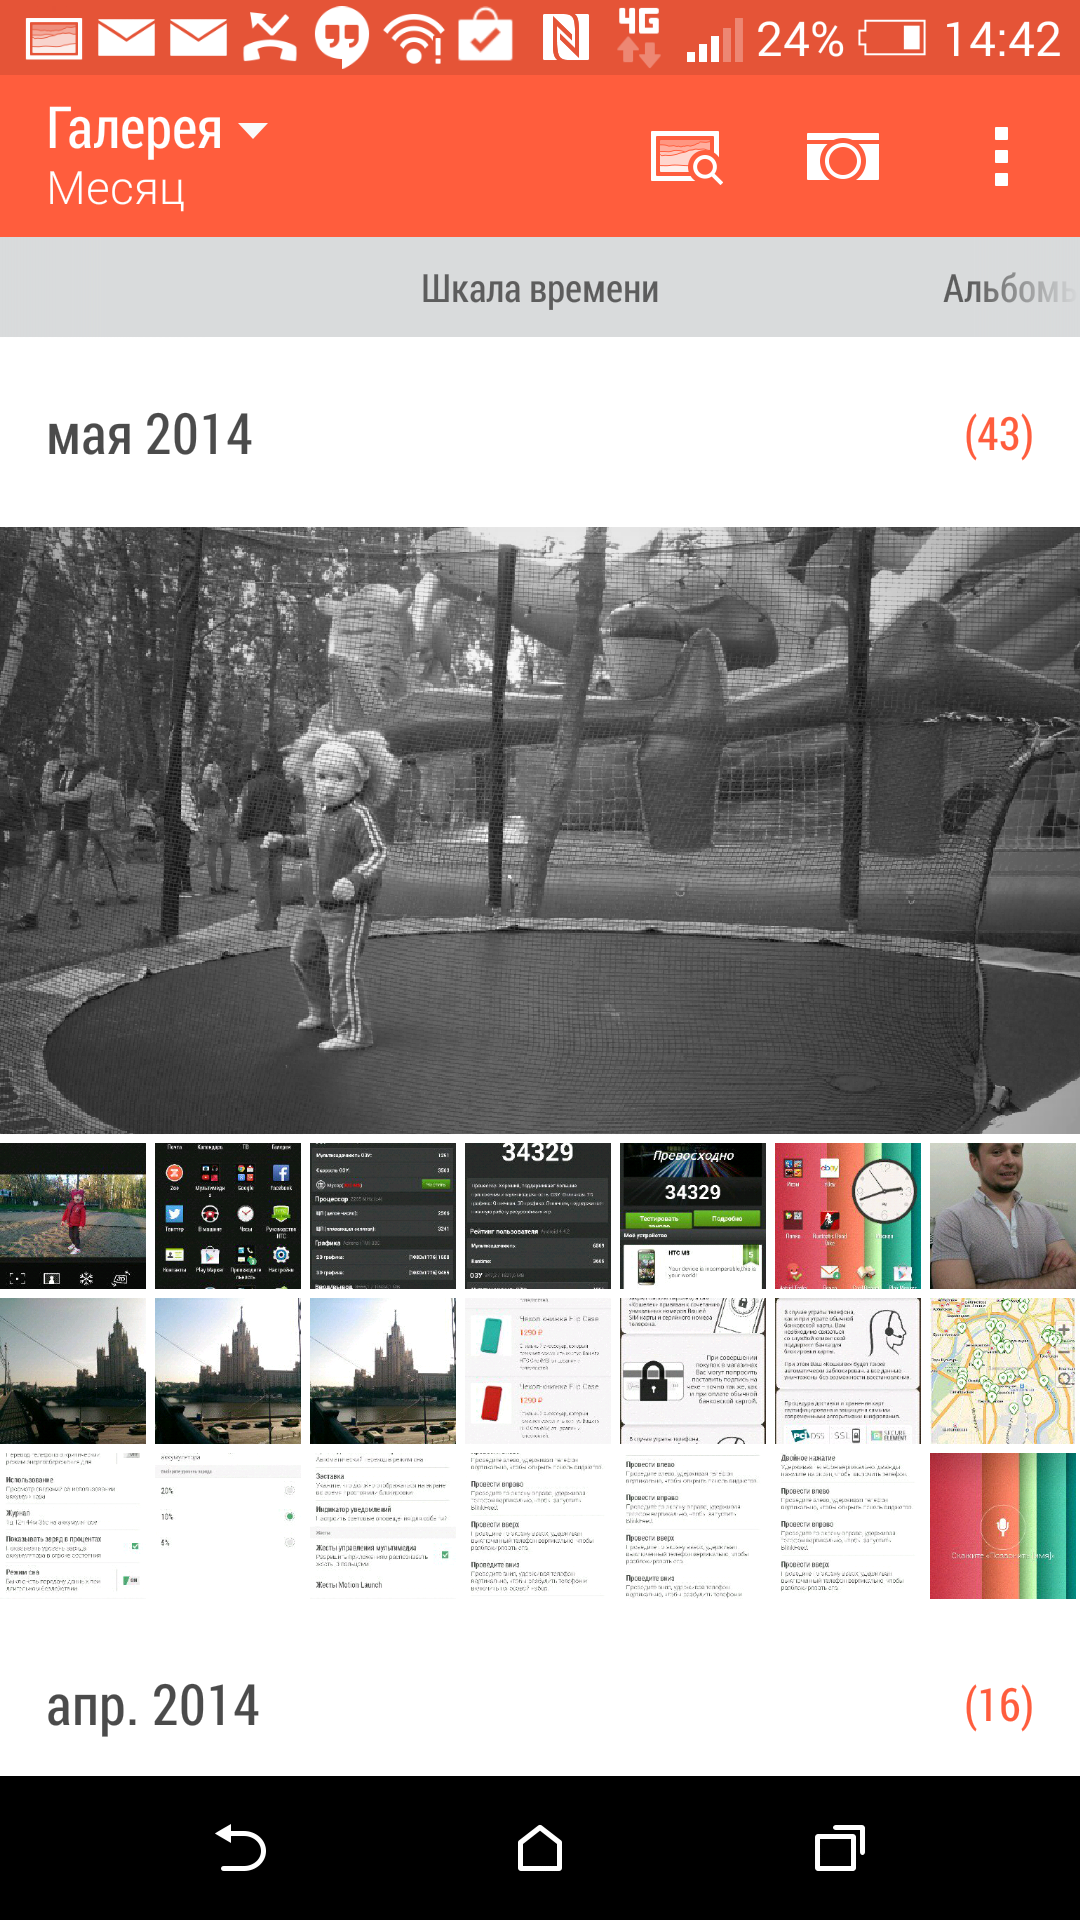 Screenshot_2014-05-19-14-42-54